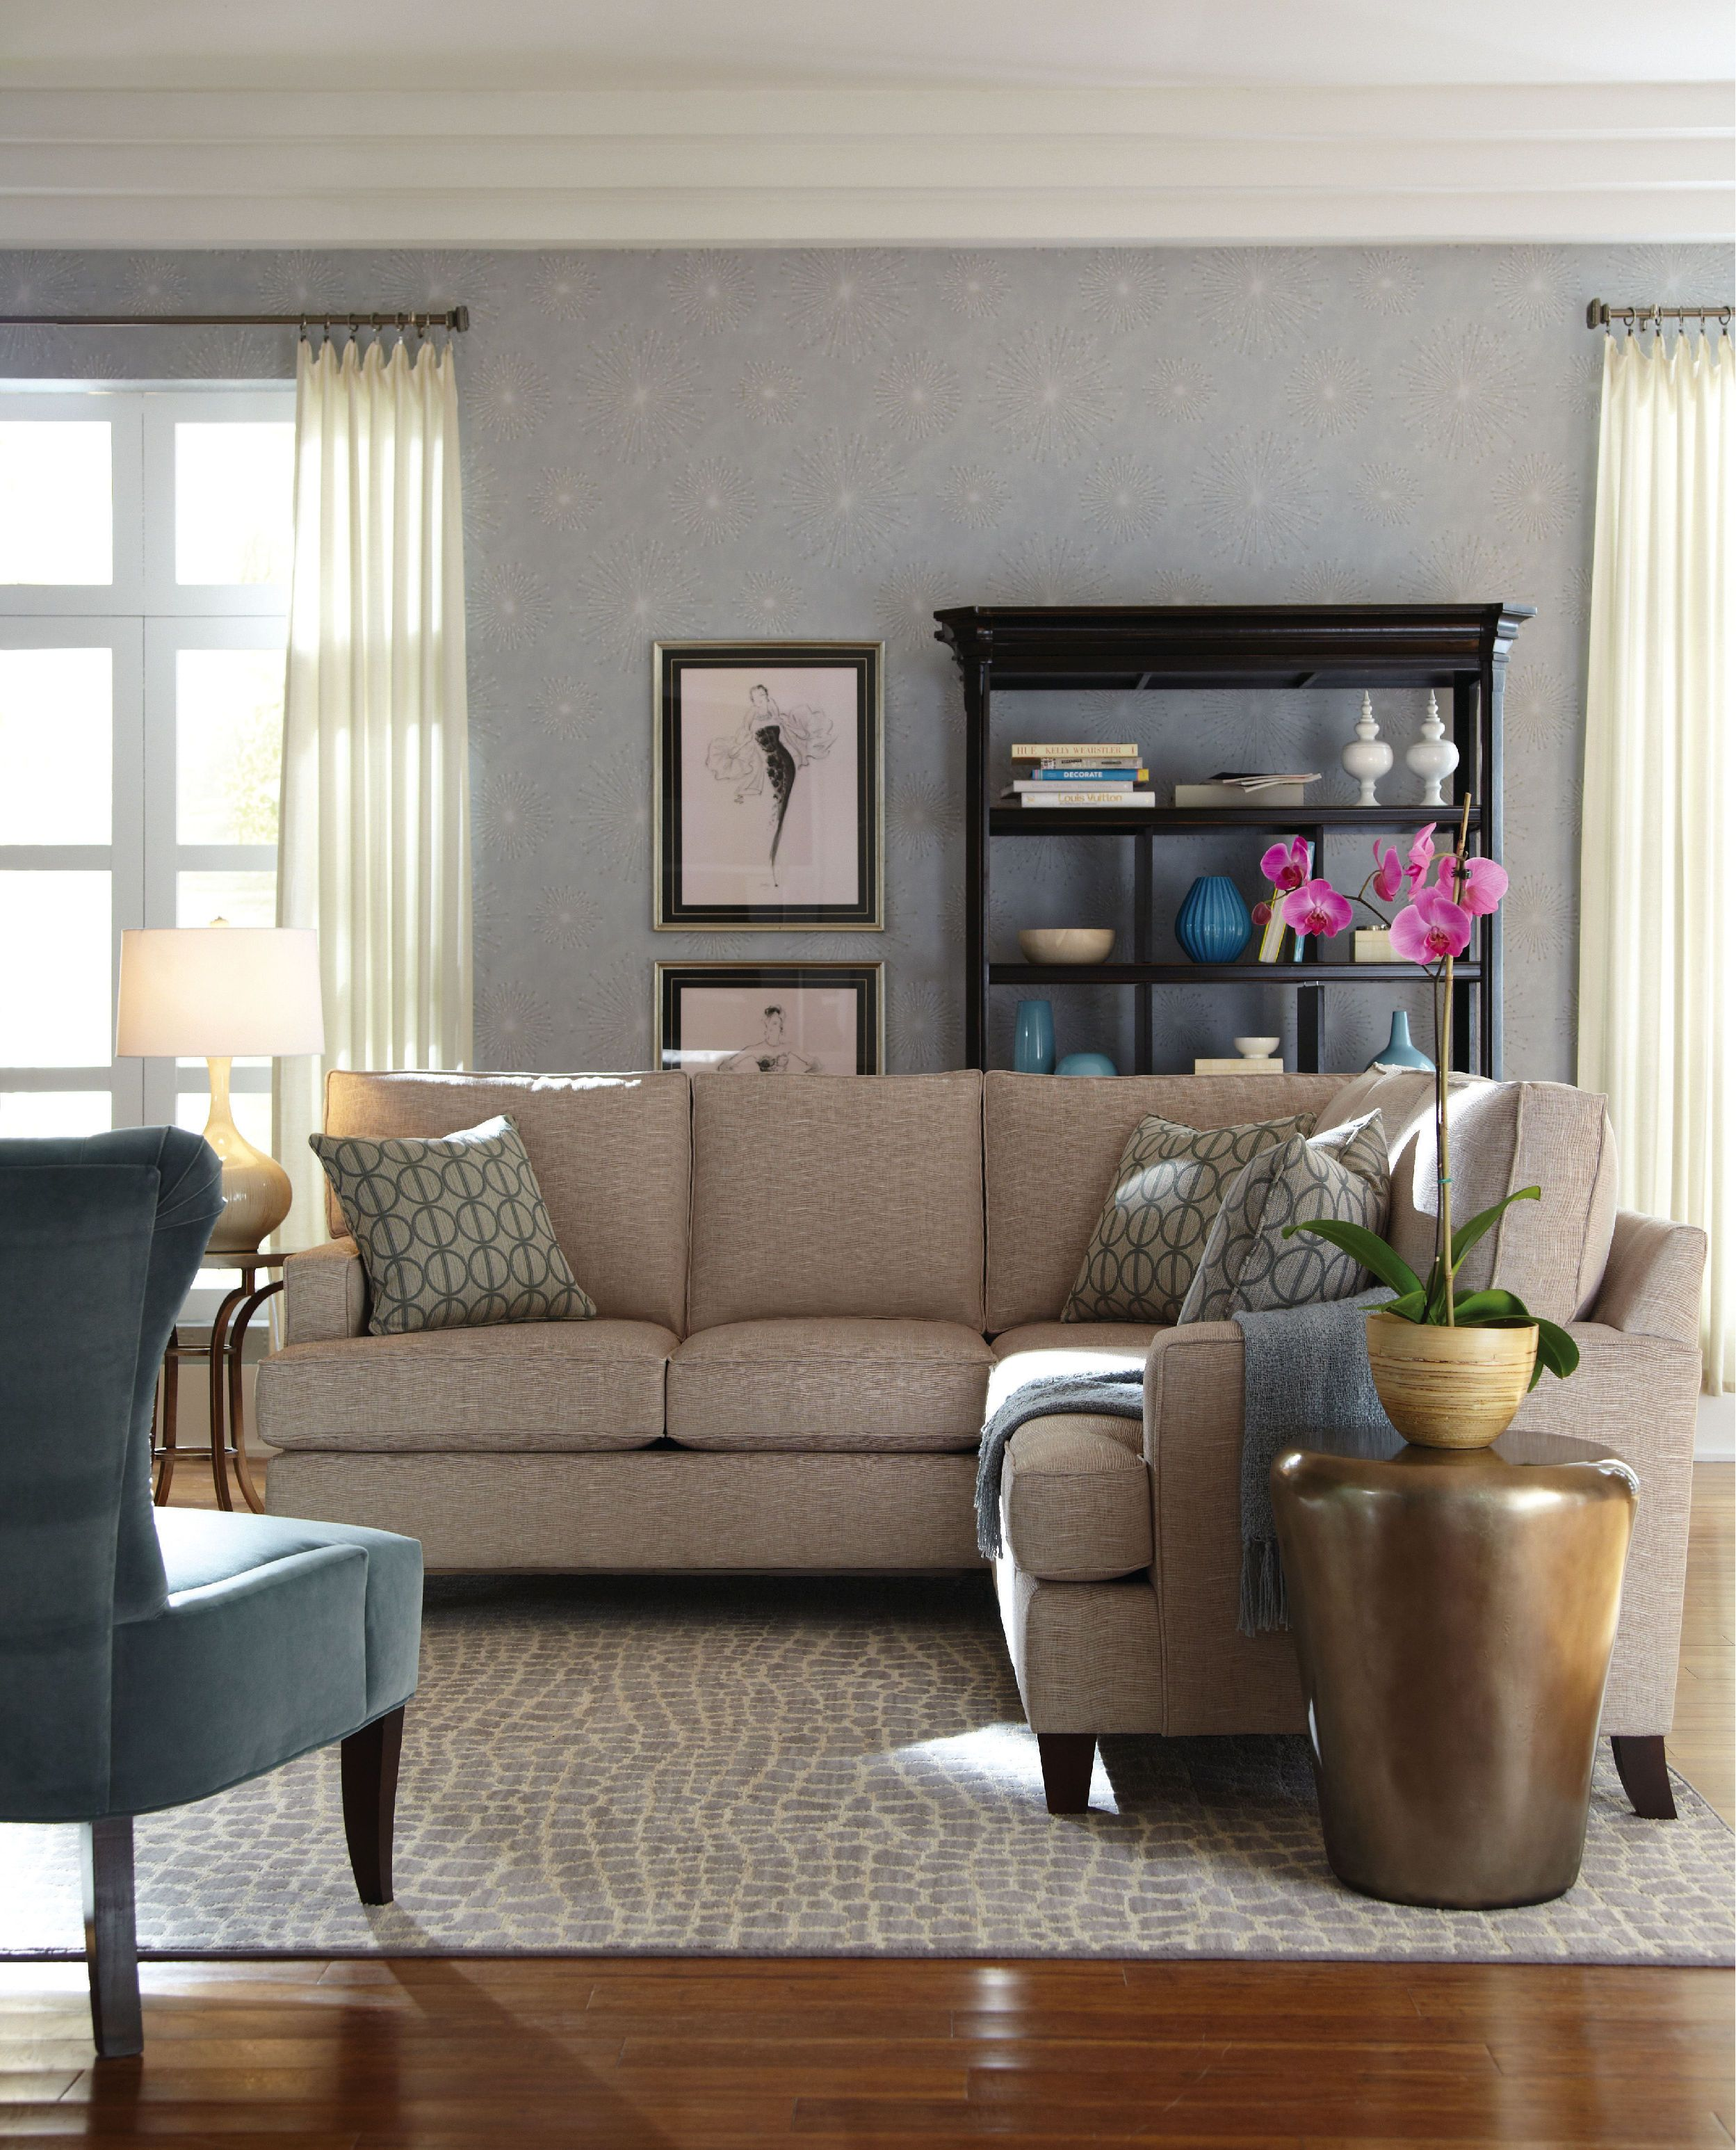 Hgtv Home Living Room 3 Piece Sectional 2546 Lsect2 Furniture Showcase Stillwater Ok